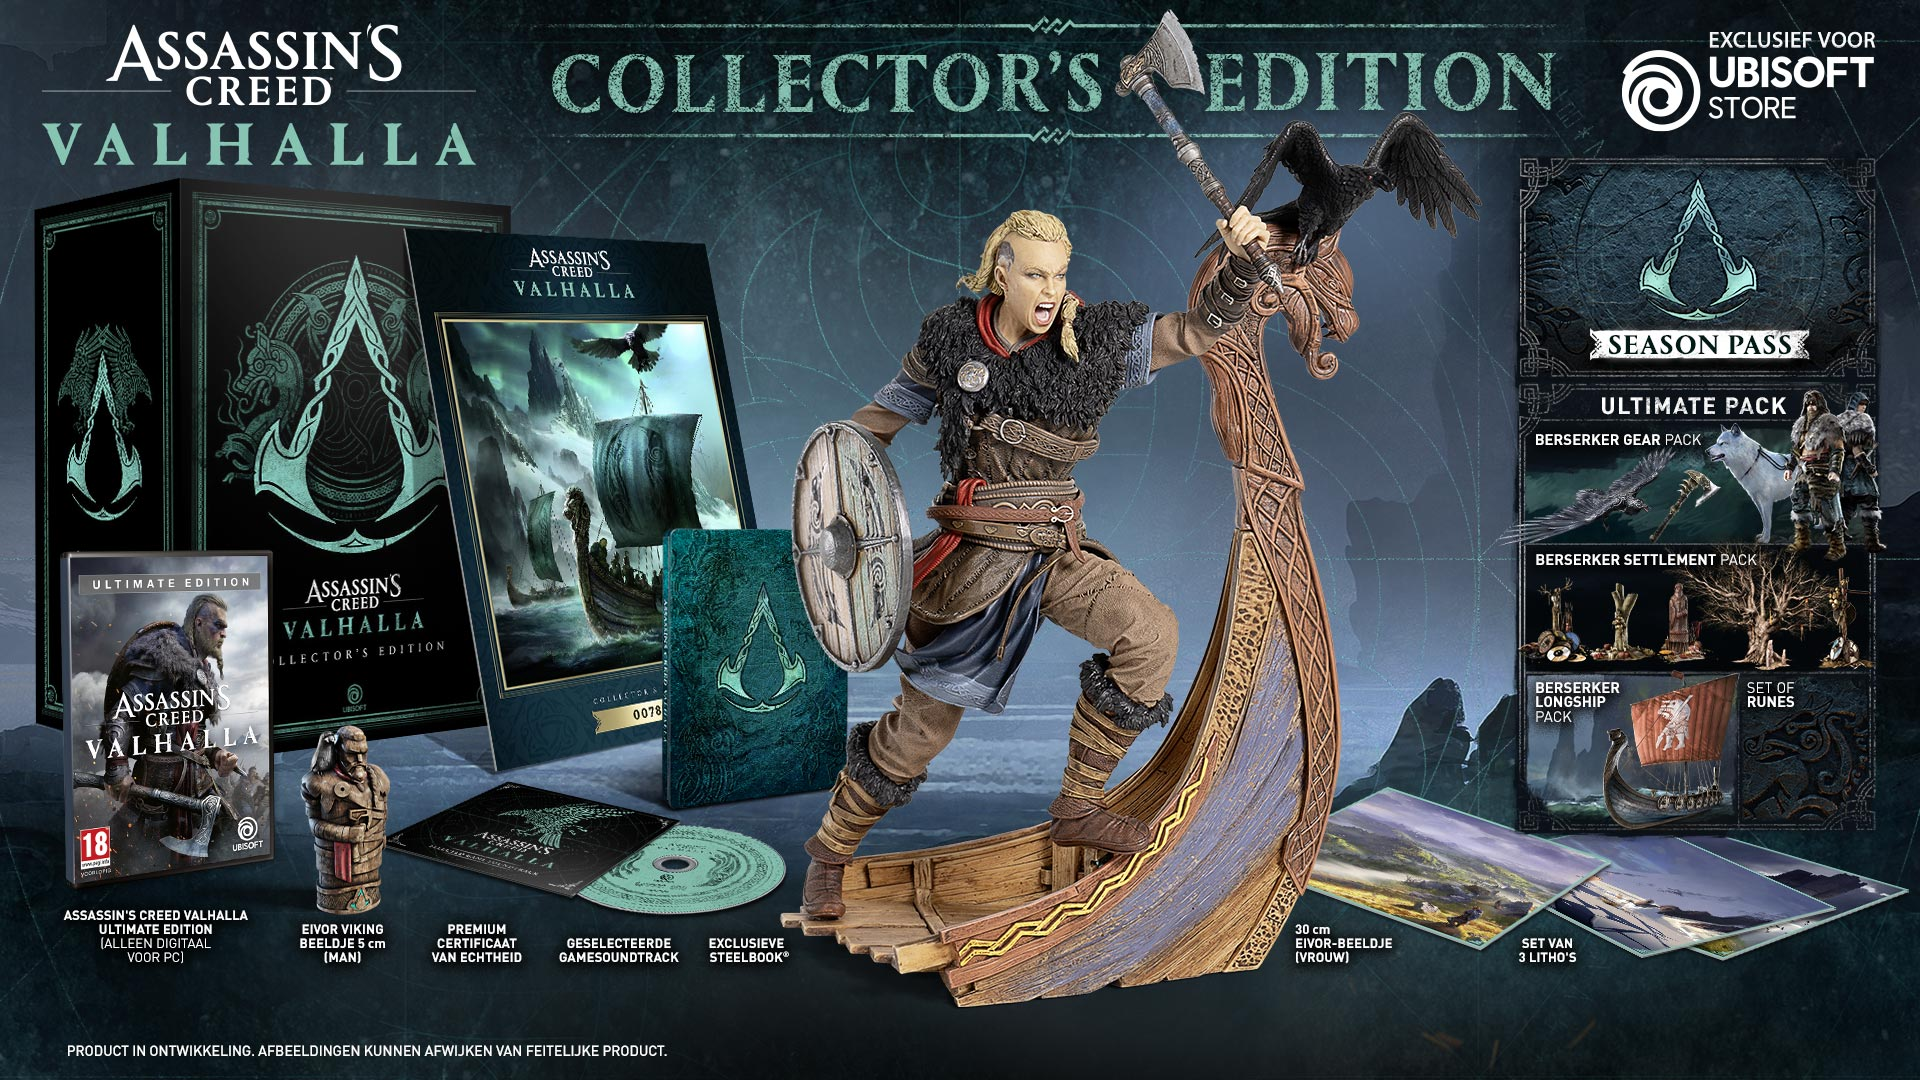 Content of the Collector's edition